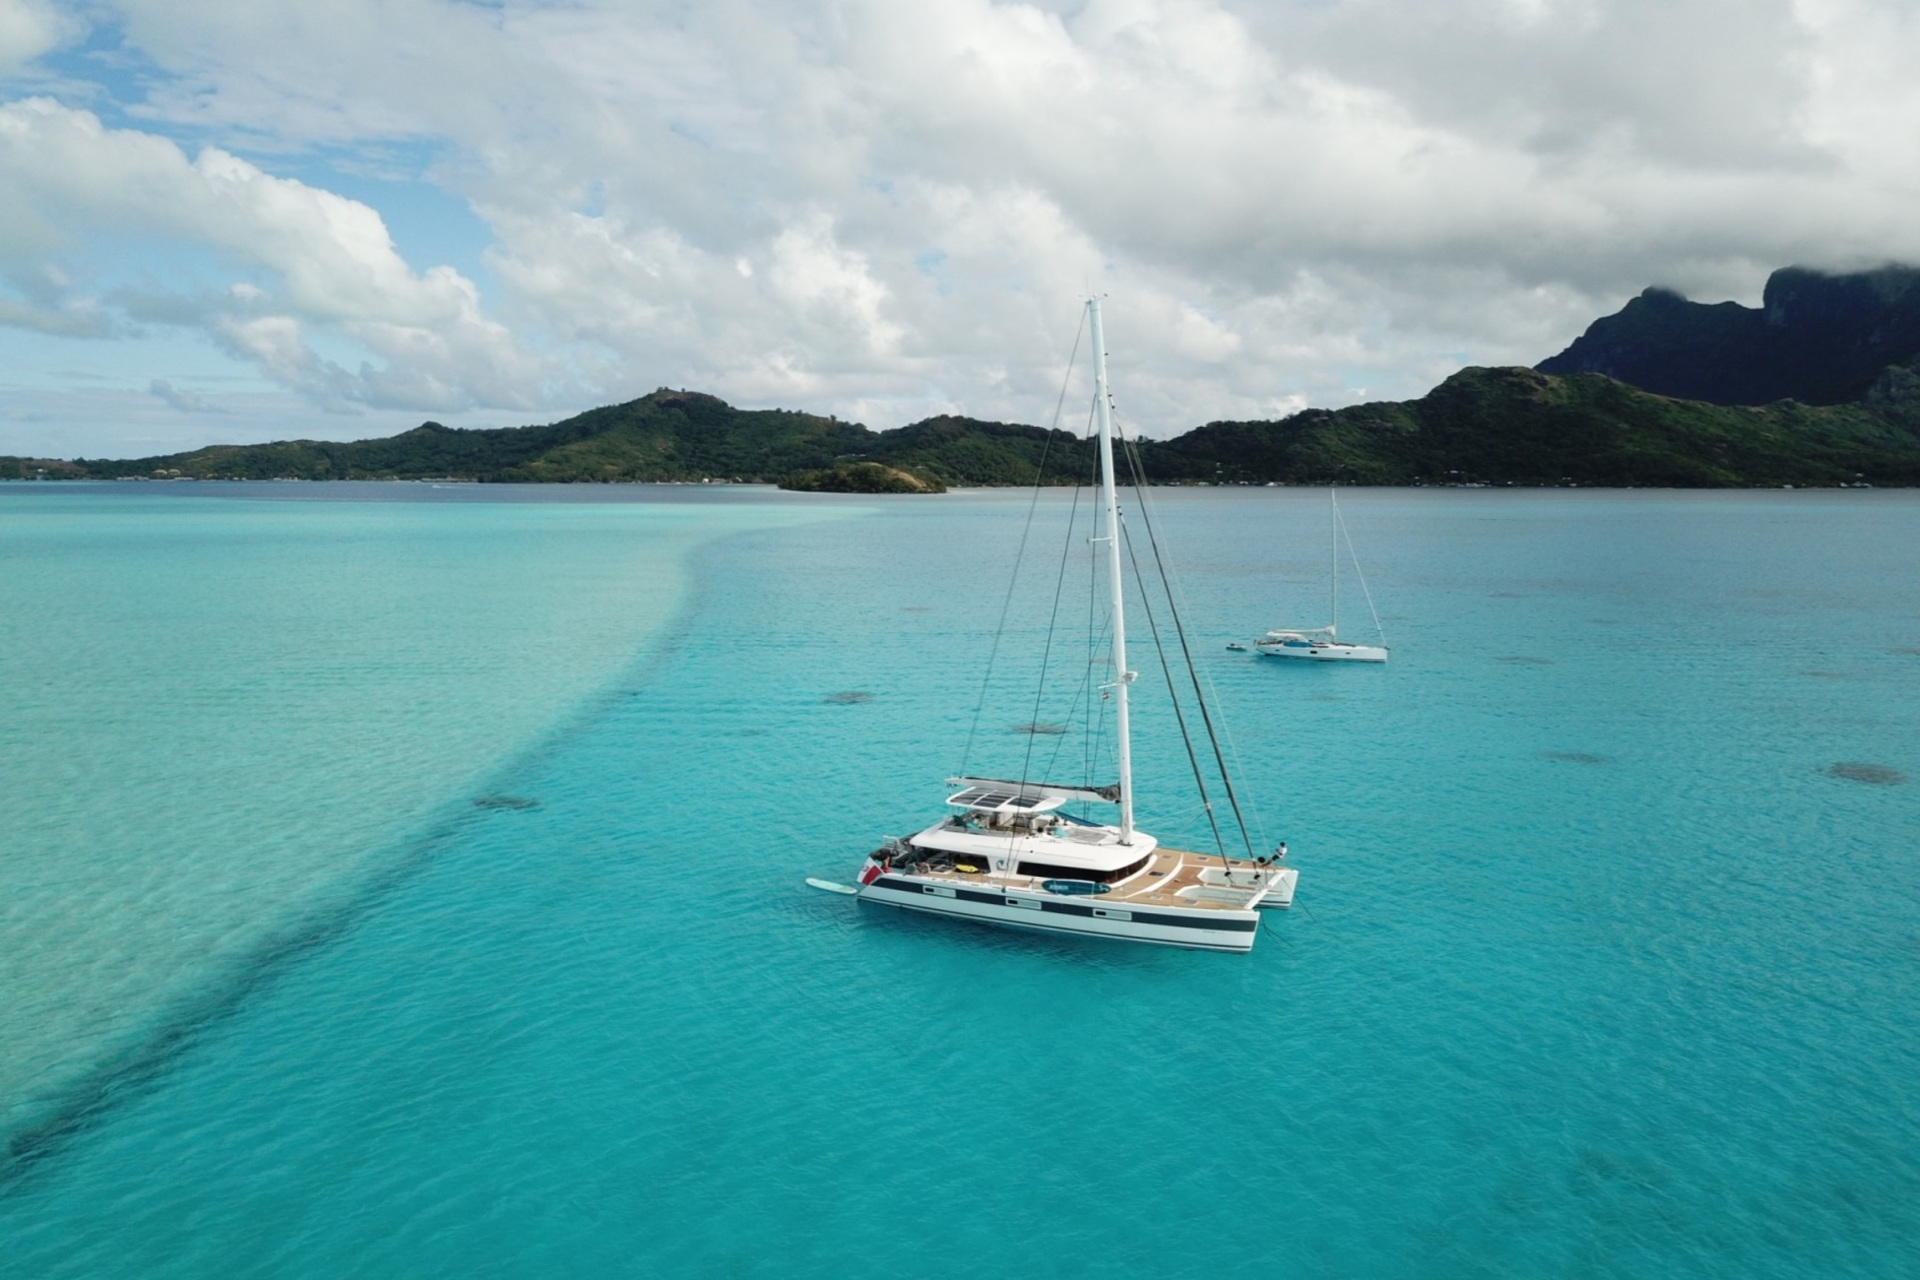 S/Y OCEAN VIEW - Anchored on charter